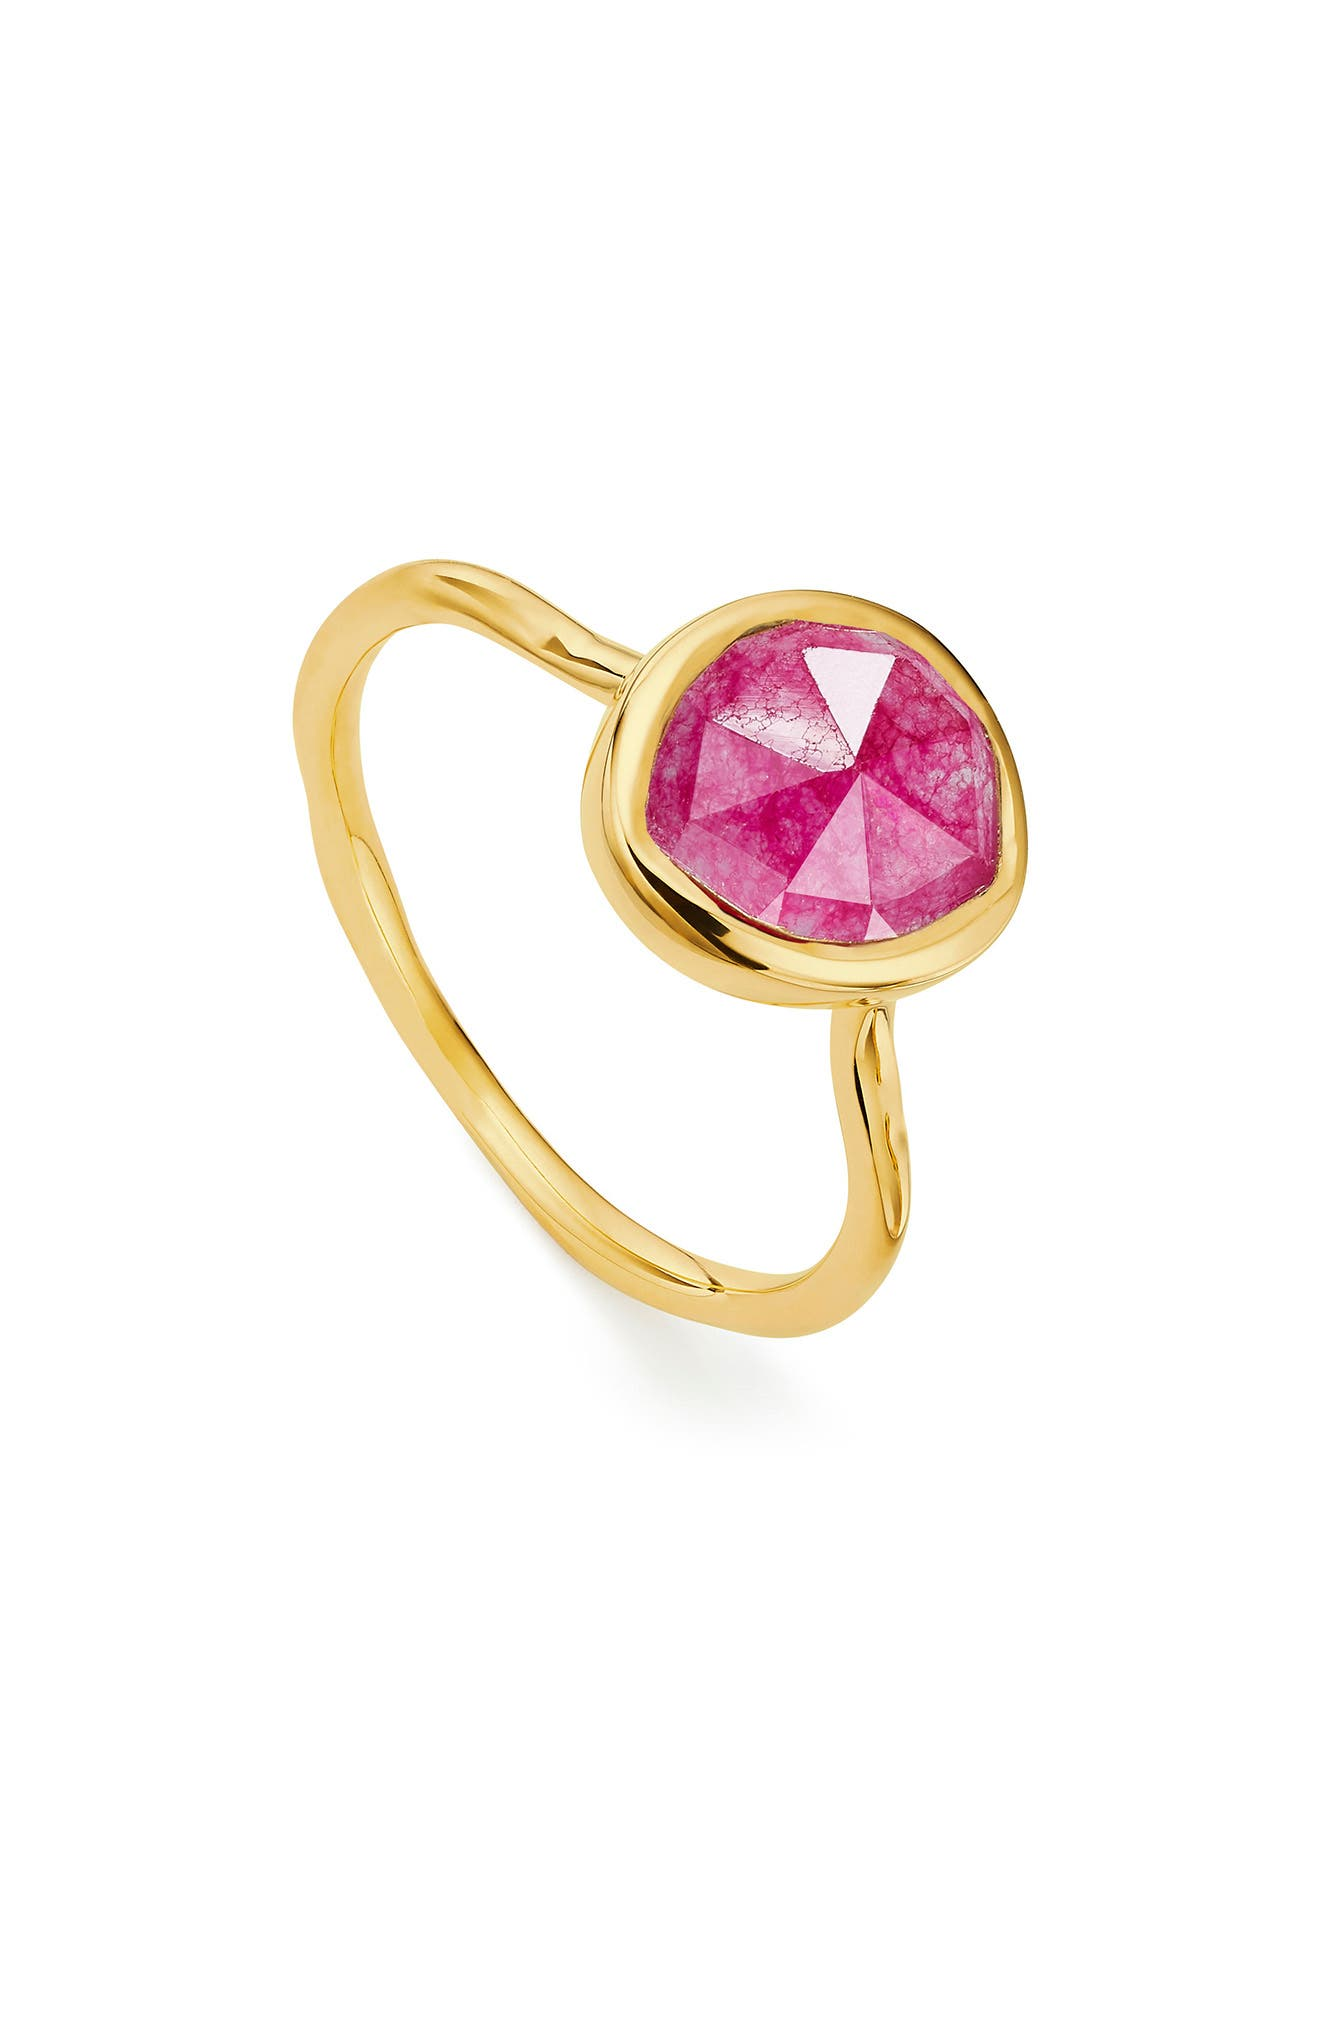 Siren Semiprecious Stone Stacking Ring,                         Main,                         color, GOLD/ PINK QUARTZ